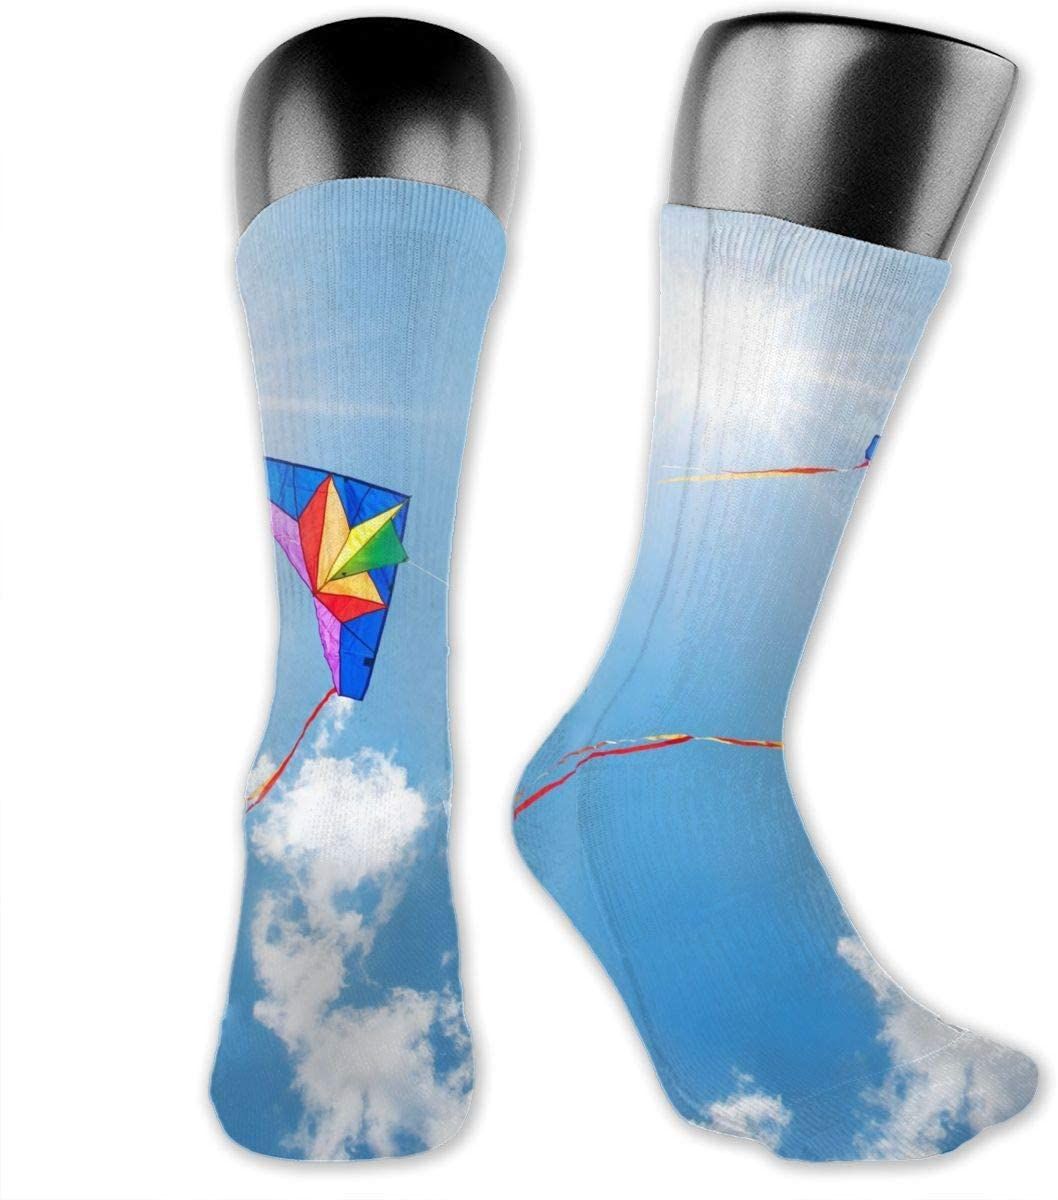 OLGCZM Colorful Kite Men Womens Thin High Ankle Casual Socks Fit Outdoor Hiking Trail